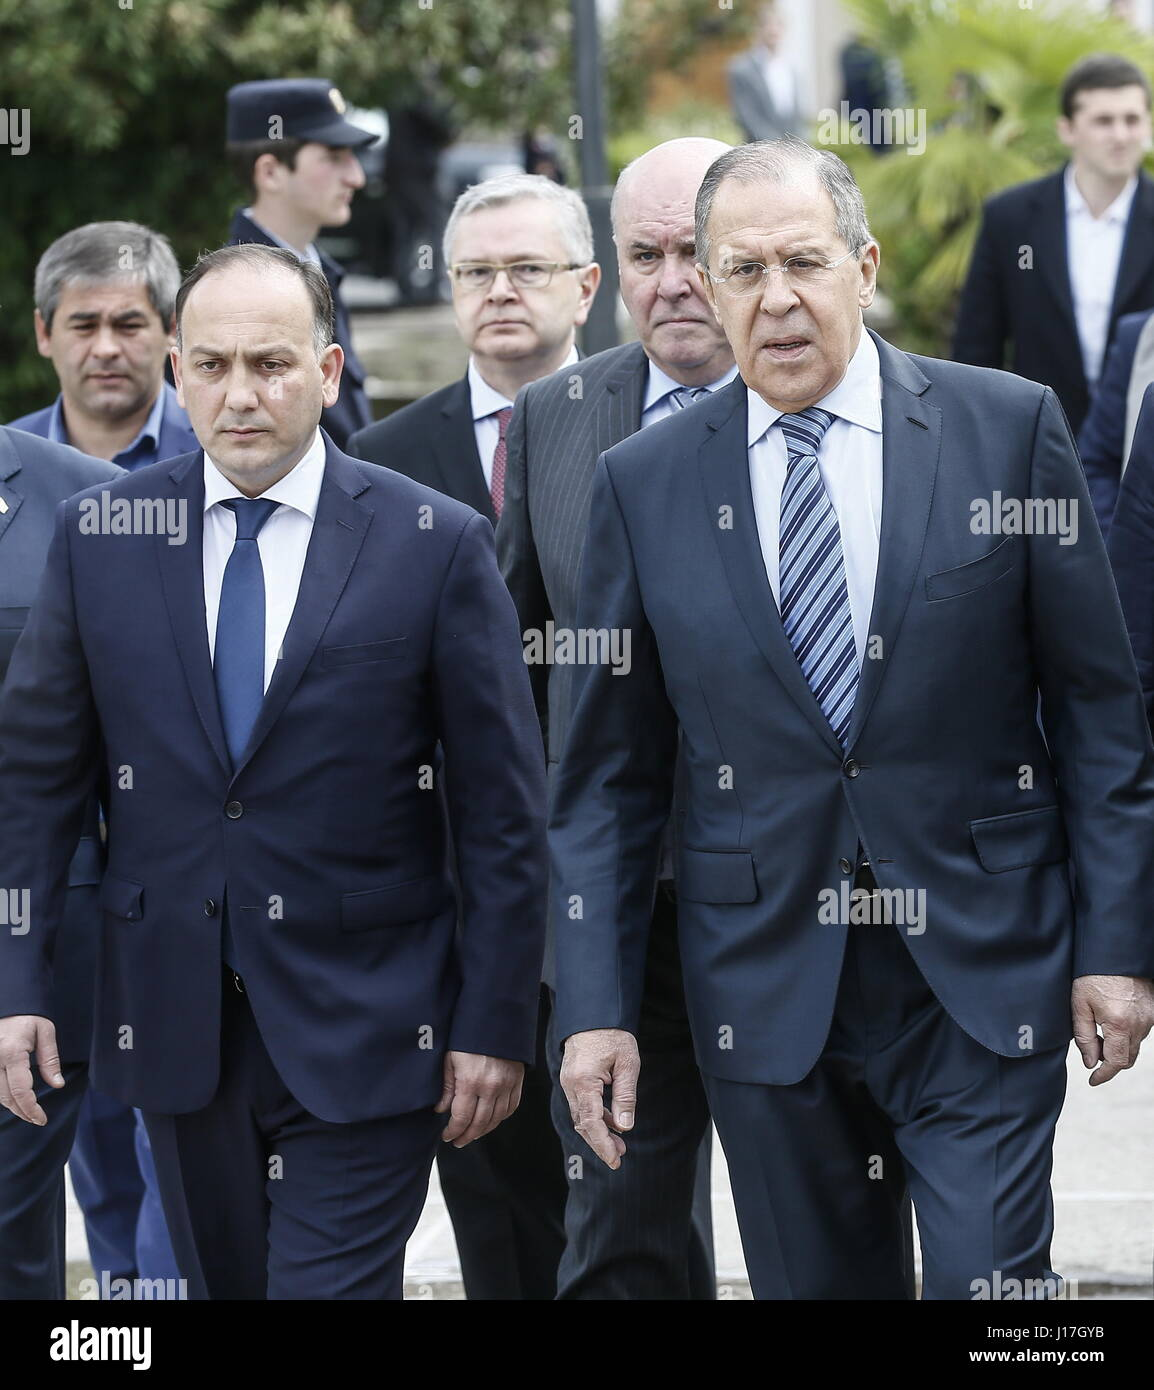 Sukhum, Abkhazia. 19th Apr, 2017. Abkhazia's Minister of Foreign Affairs Daur Kove, Russia's Minister of - Stock Image